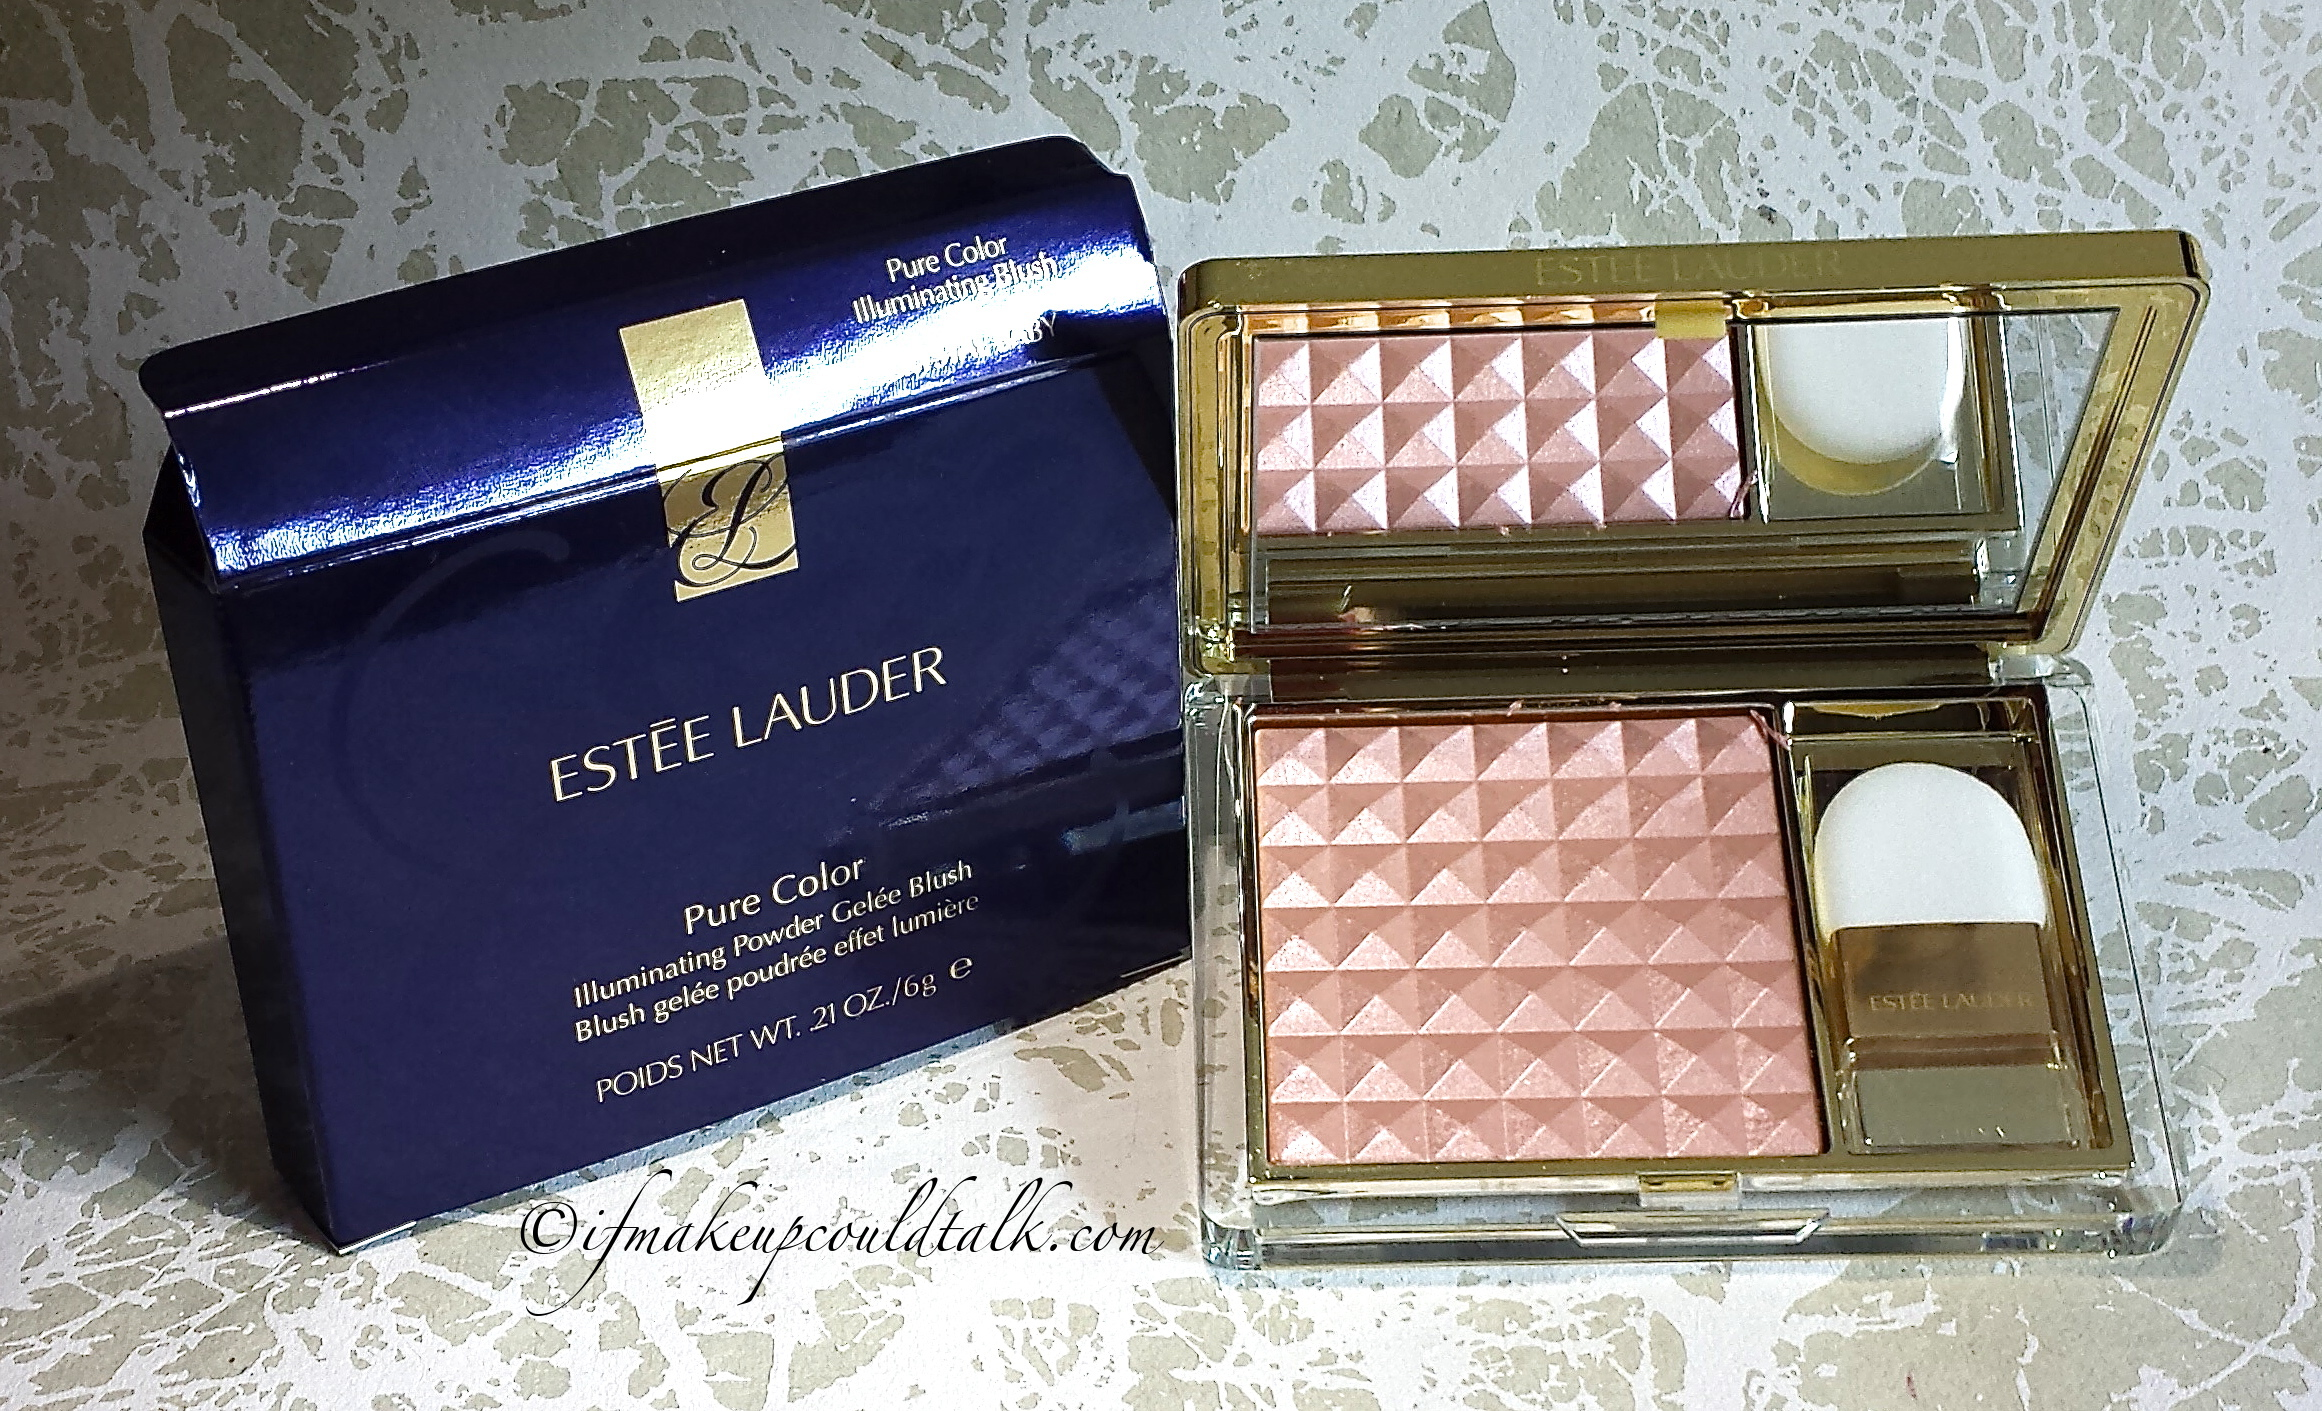 Estee Lauder 04 Crystal Baby Pure Color Illuminating Powder Gelee Blush review and comparisons.